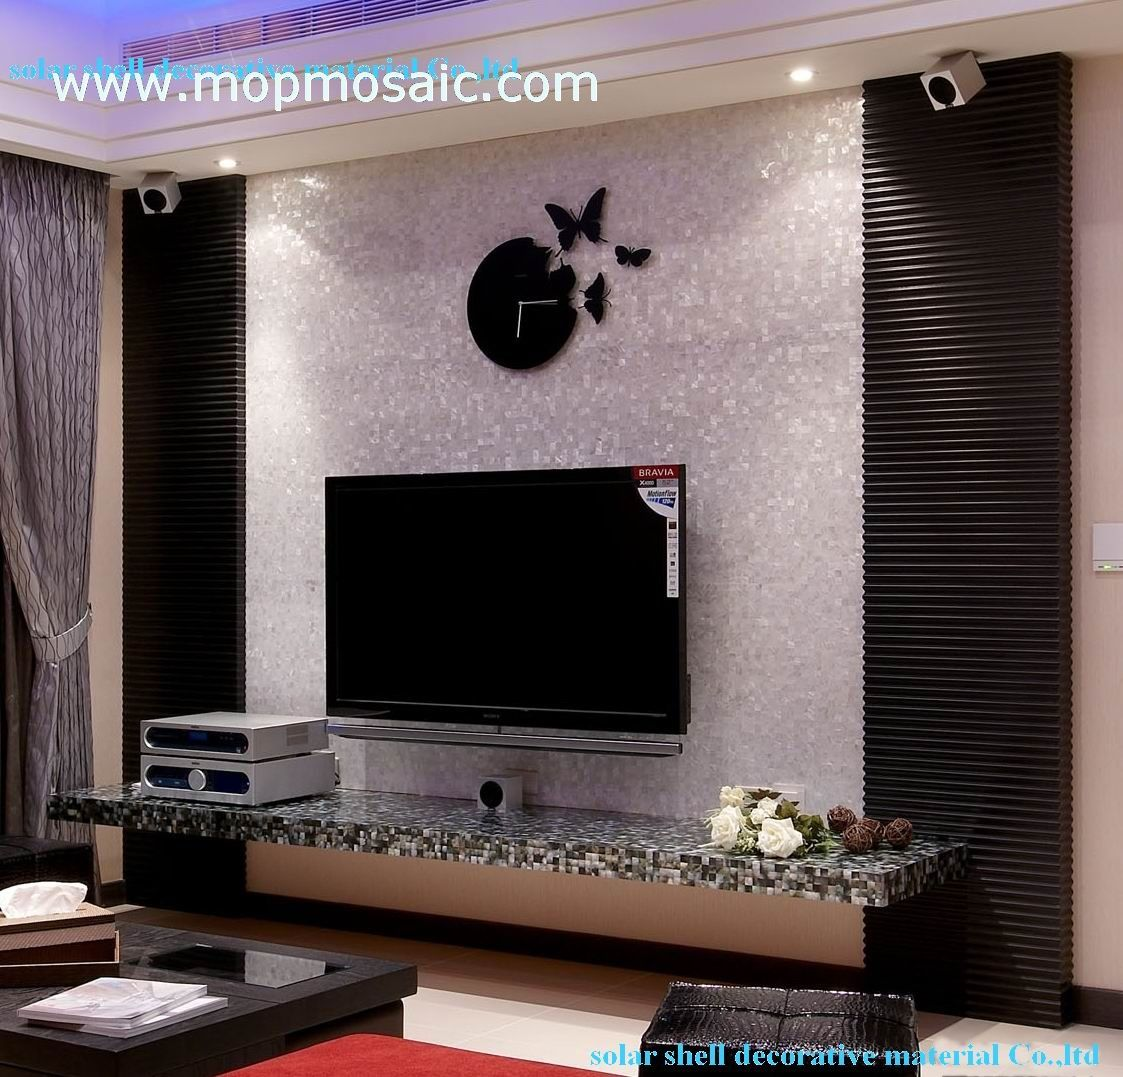 tv set on wall shell tv set background wall shell on incredible tv wall design ideas for living room decor layouts of tv models id=36022